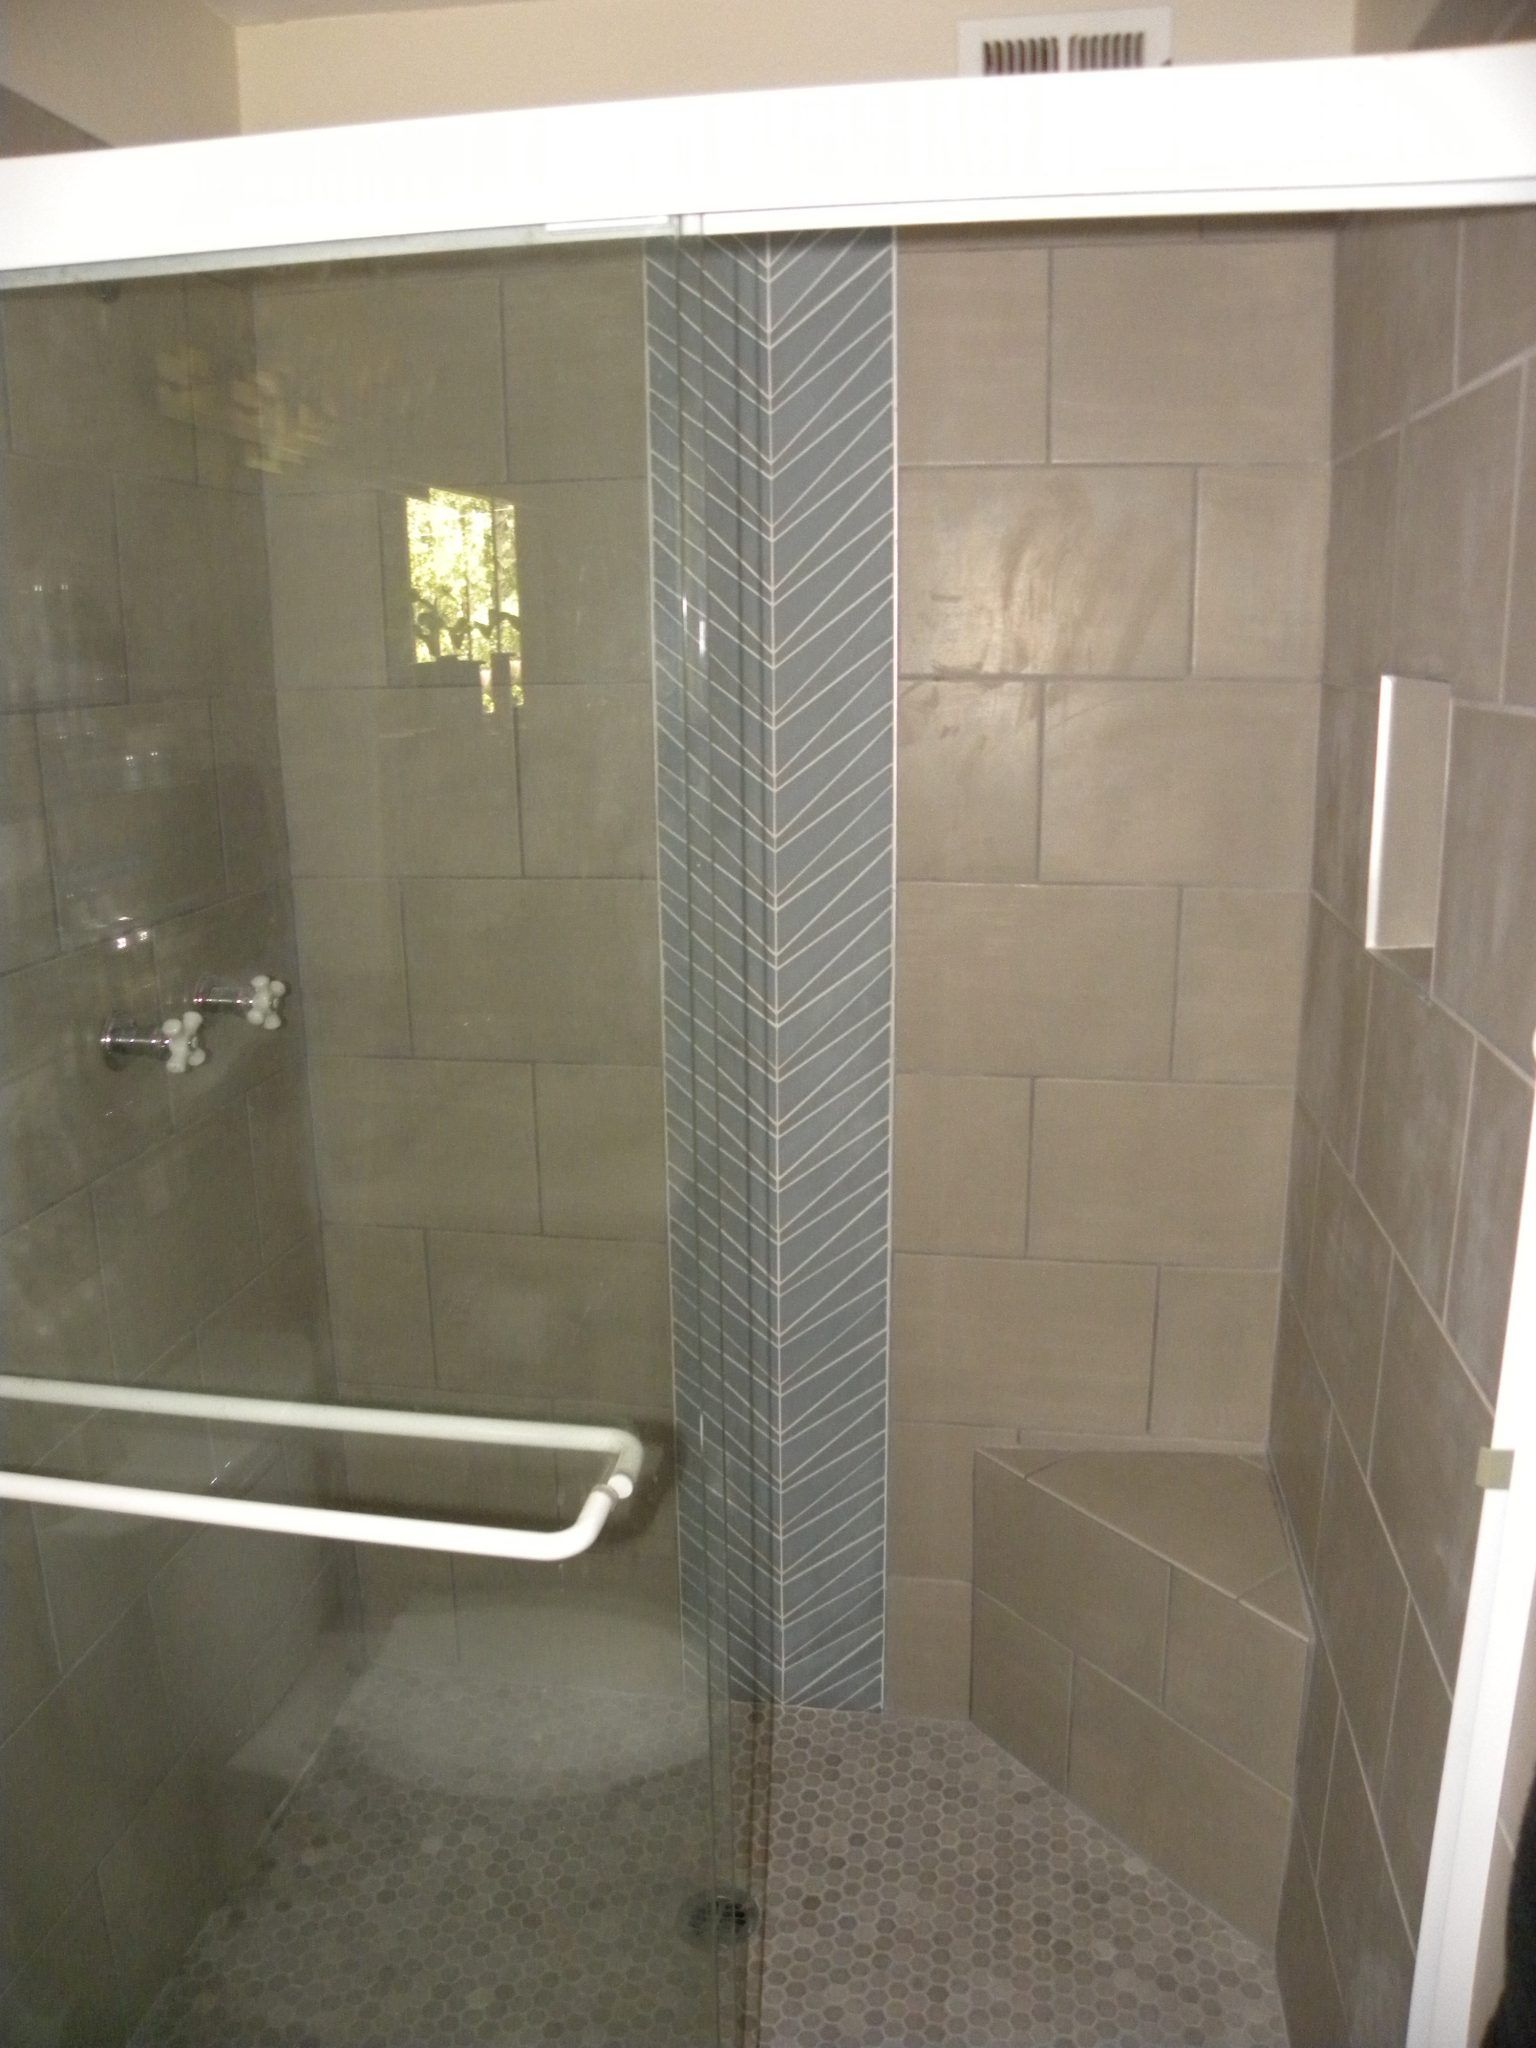 Interior shot of a custom designed shower with tan tiling and glass doors